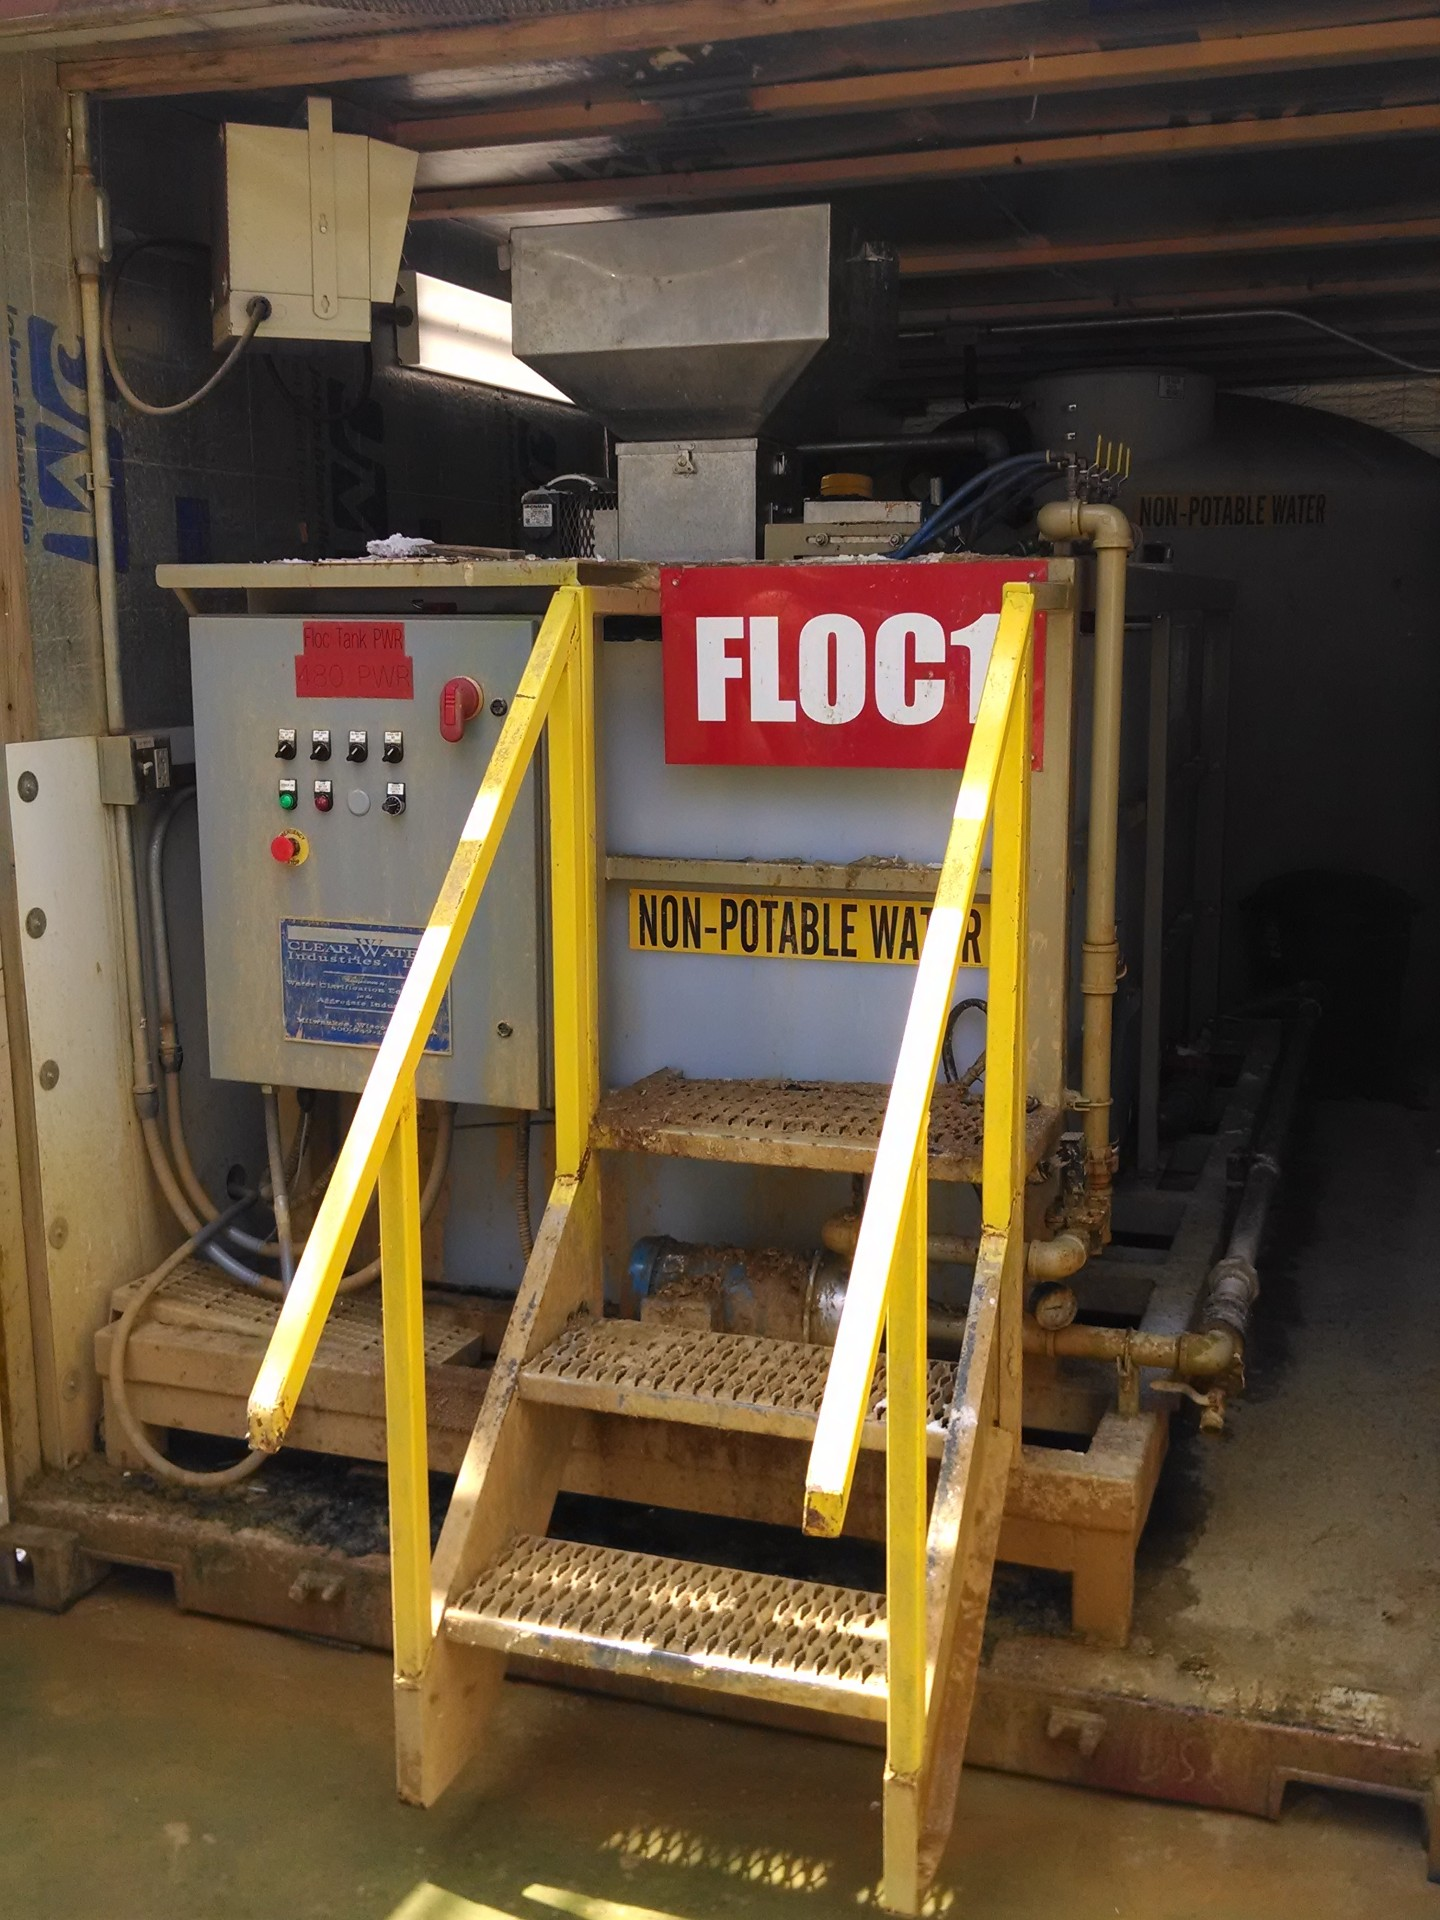 An older and dirty dry polymer make-down system housed in a shipping container at an aggregate production site.